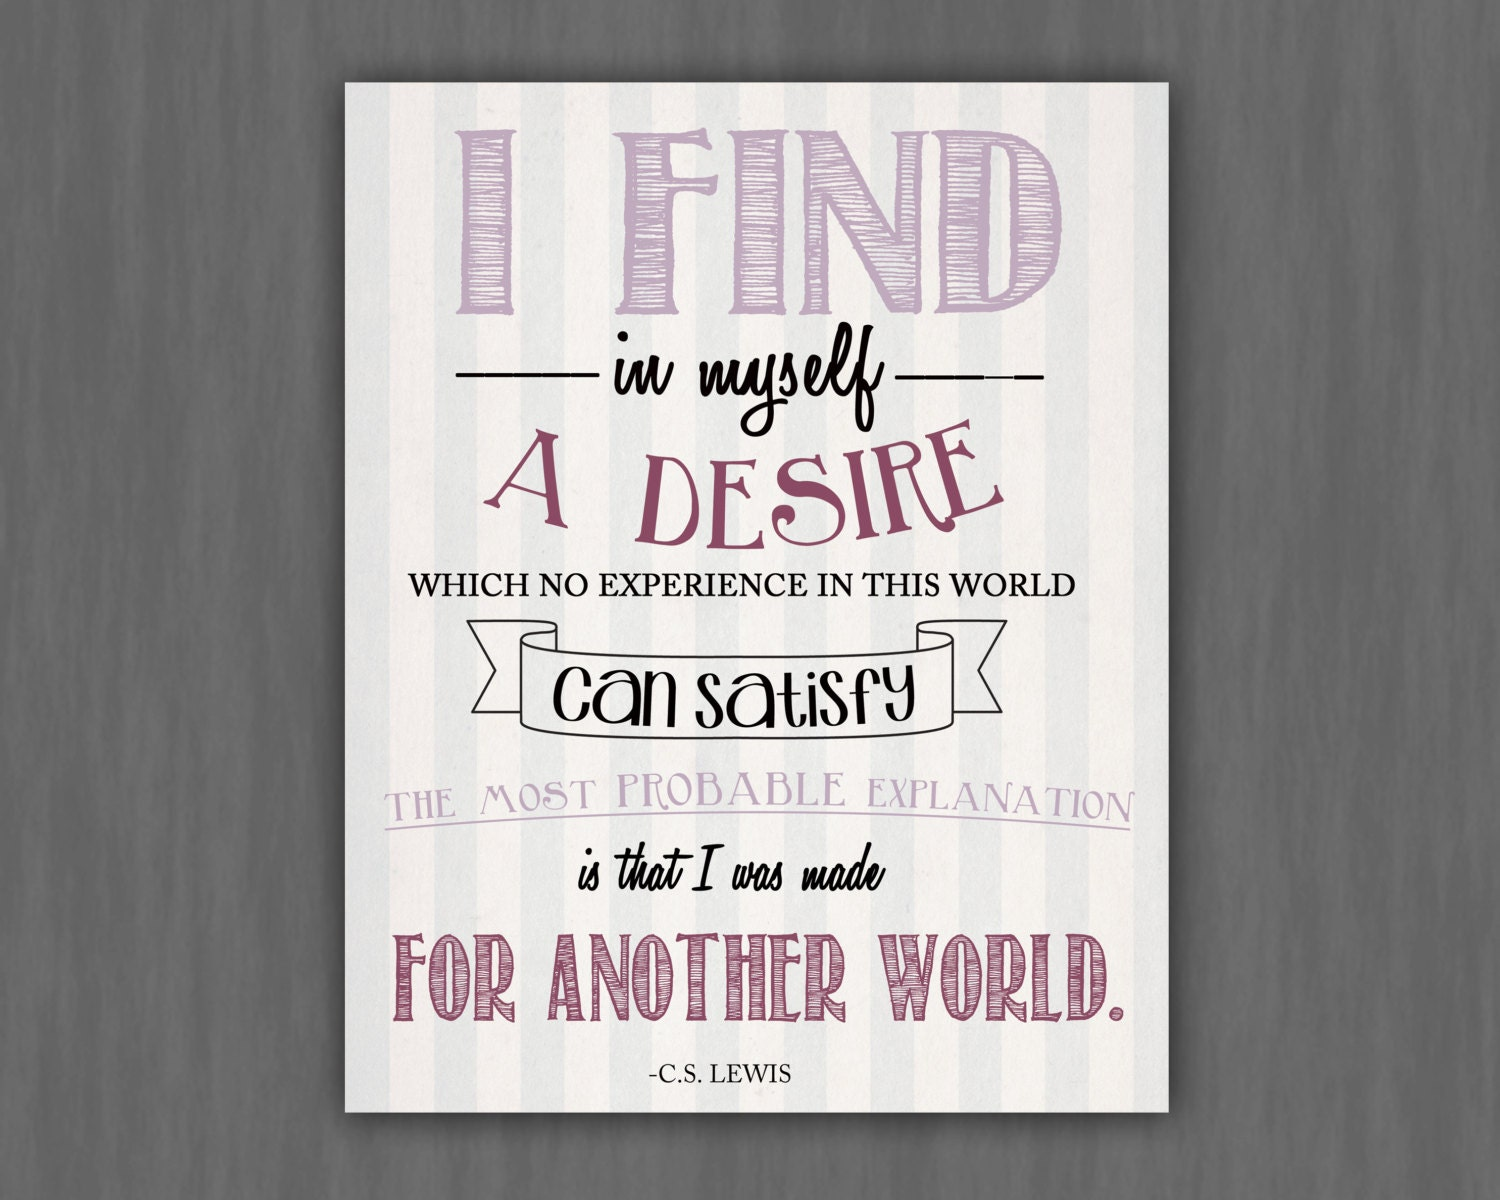 C.S. Lewis quote 8x10 print - OhHappinessCards